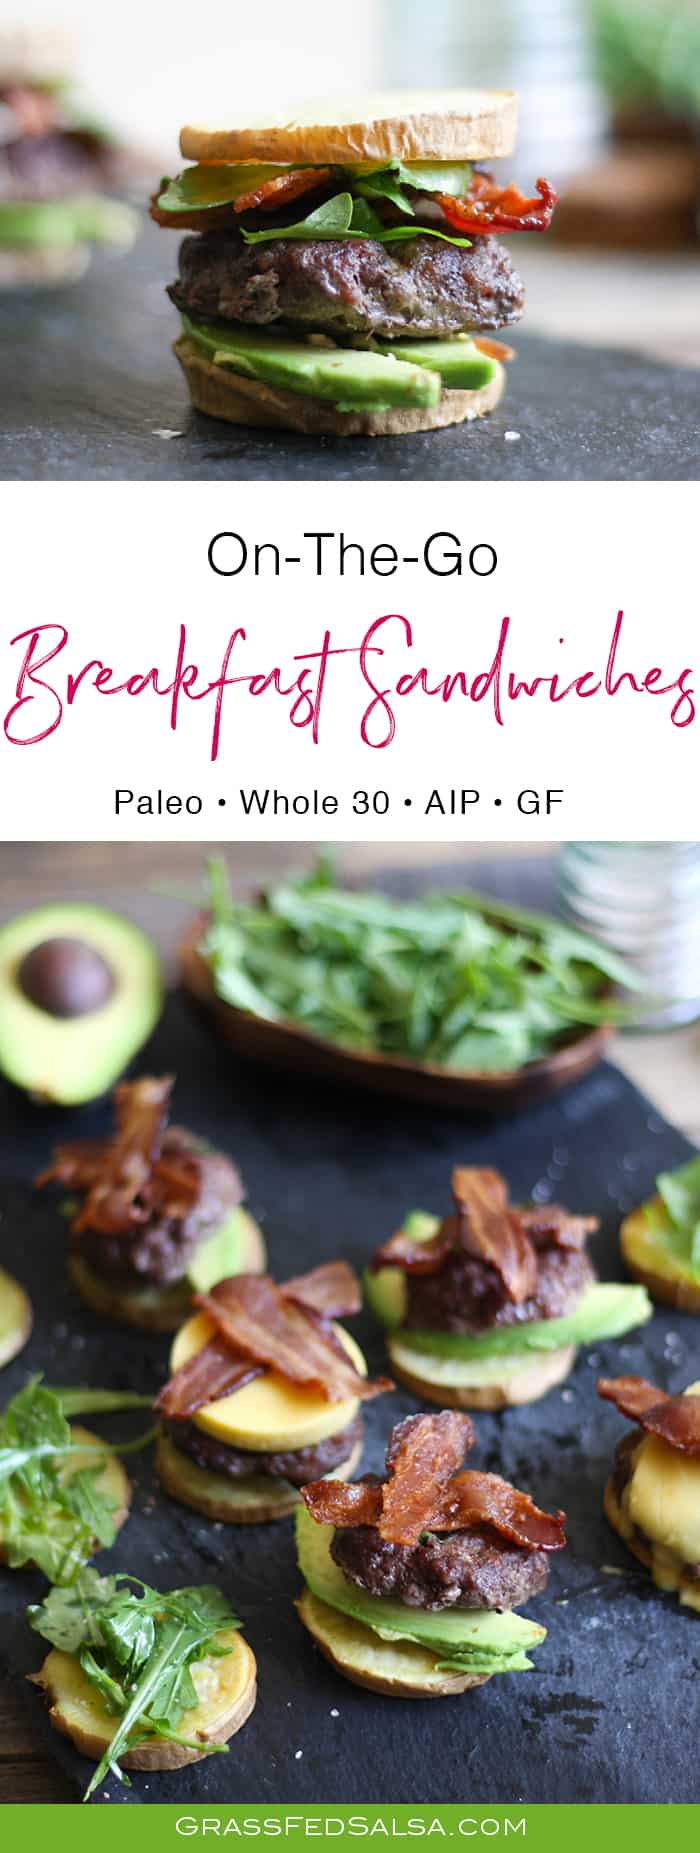 Make Ahead Breakfast Sandwich | AIP, Paleo, Whole 30